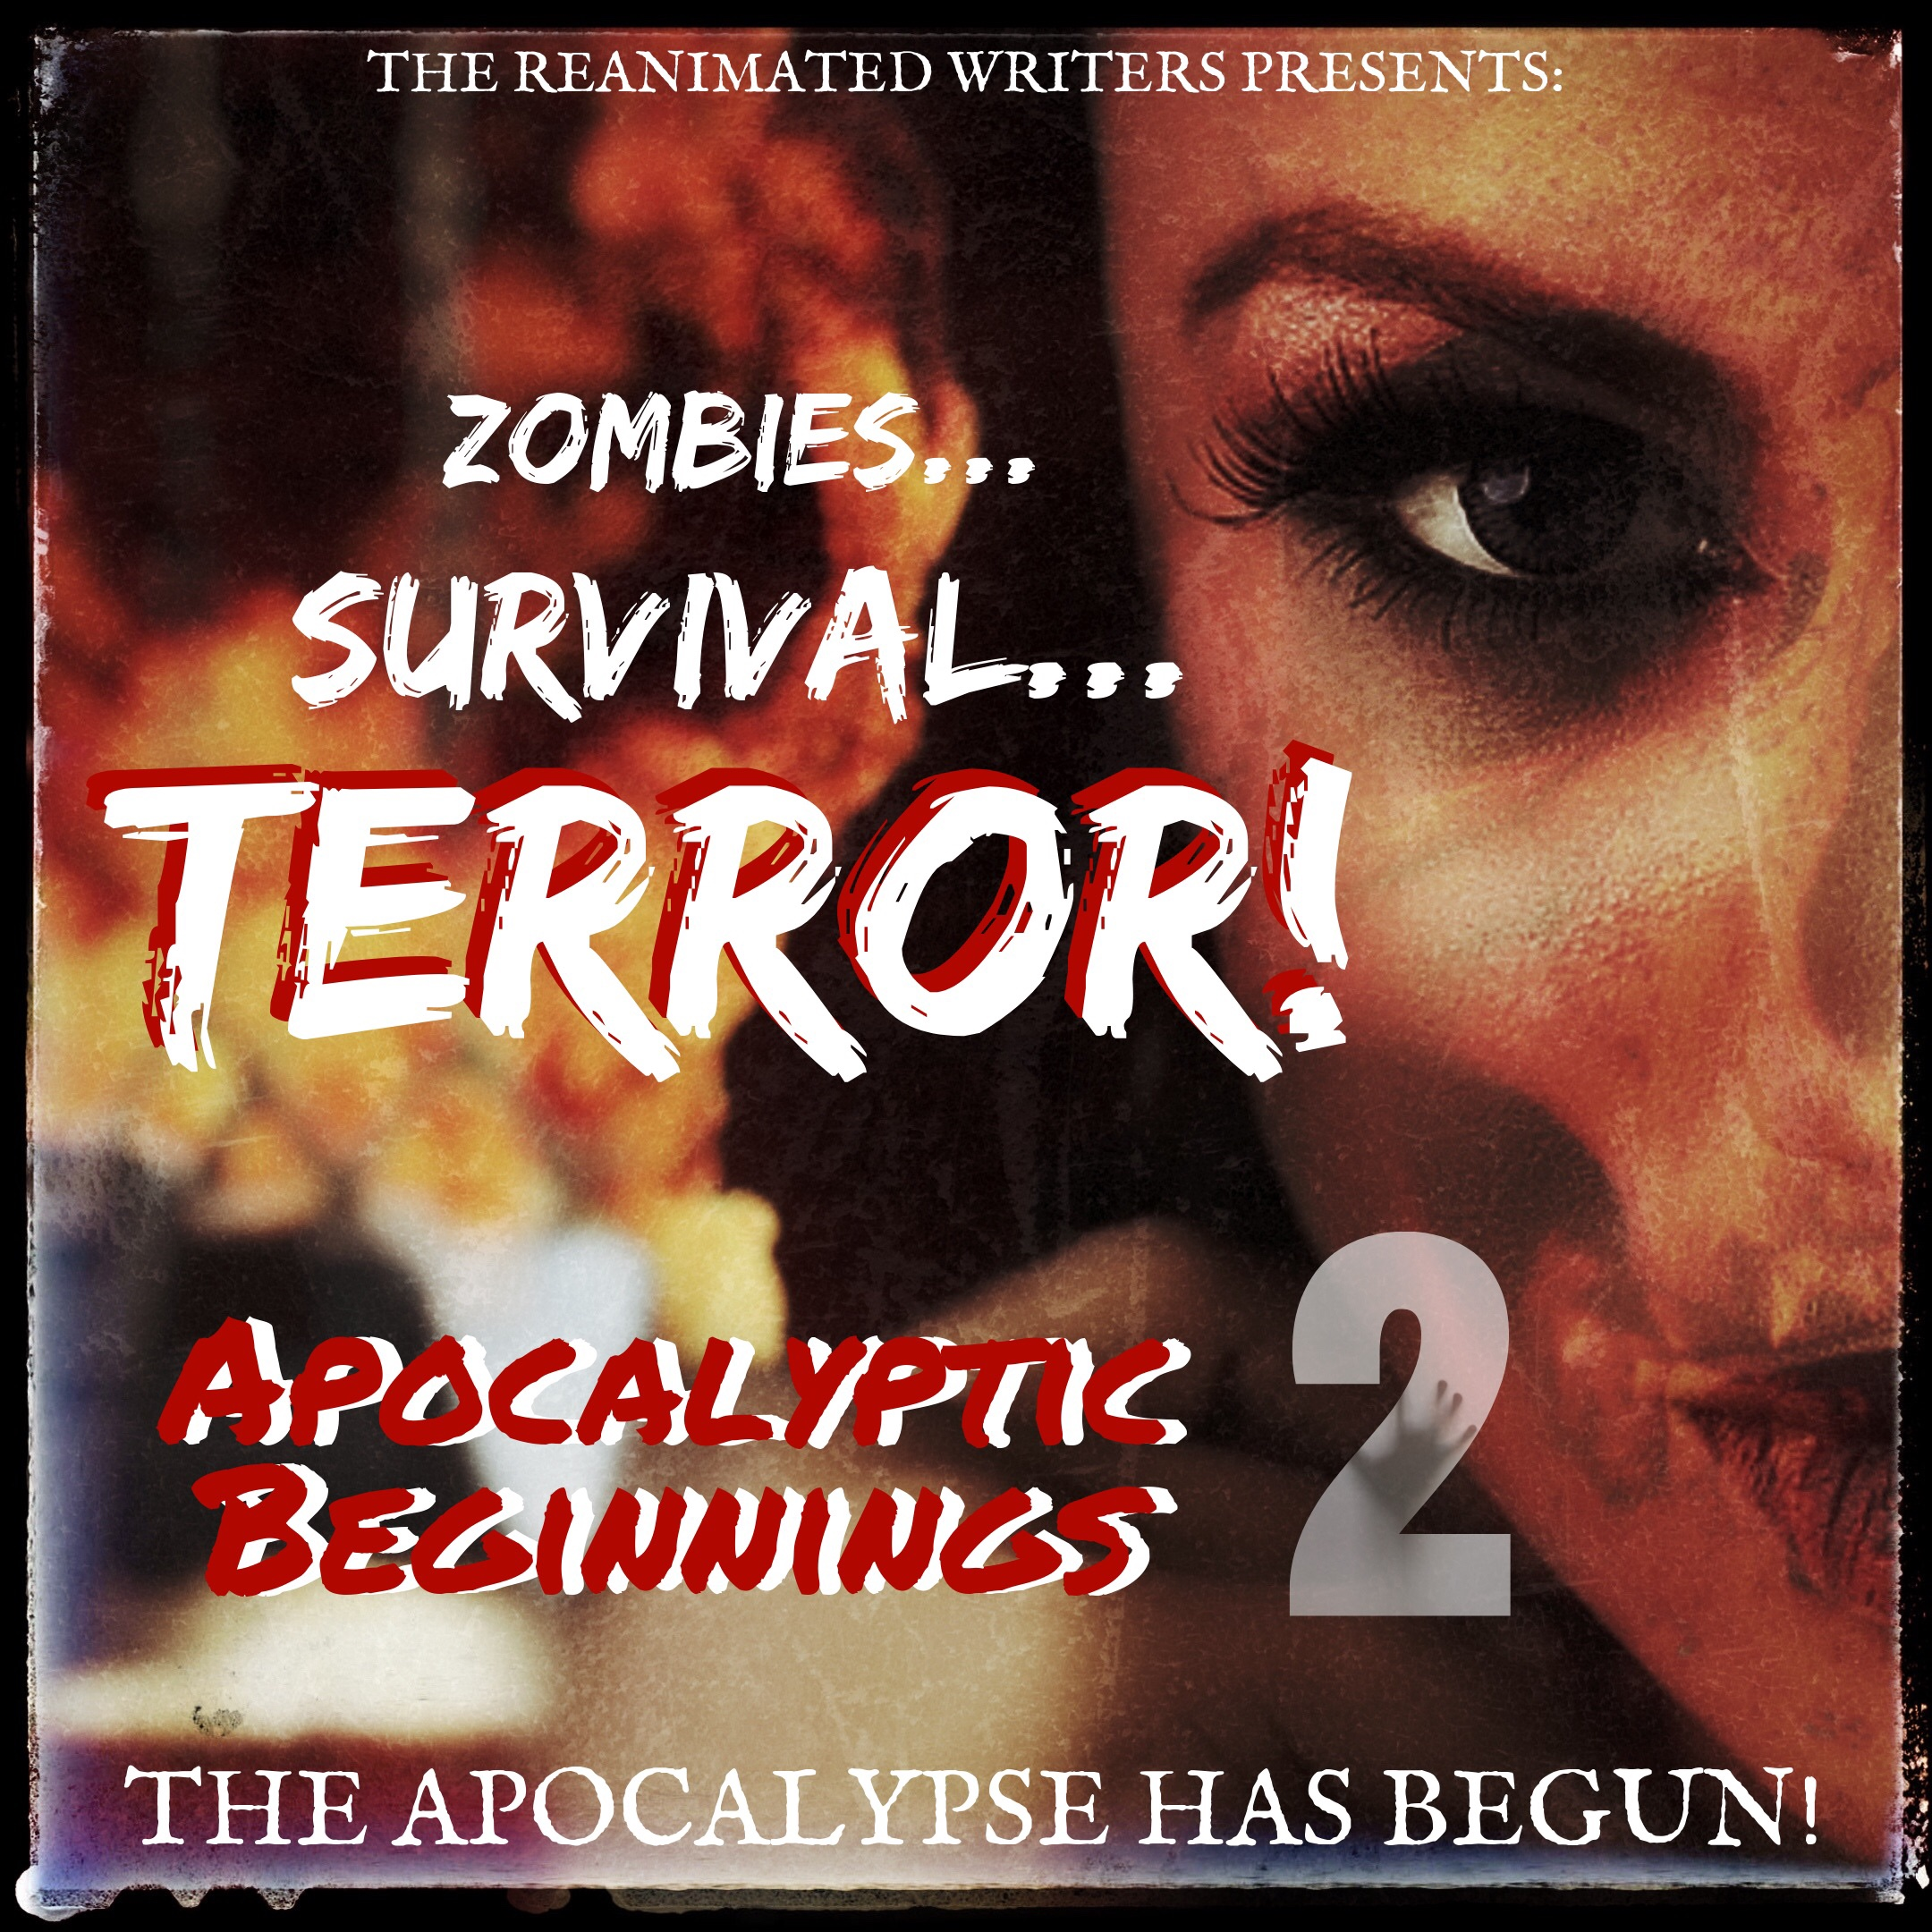 9 epic zombie novels in one collection! Get  Apocalyptic Beginnings 2  Today!